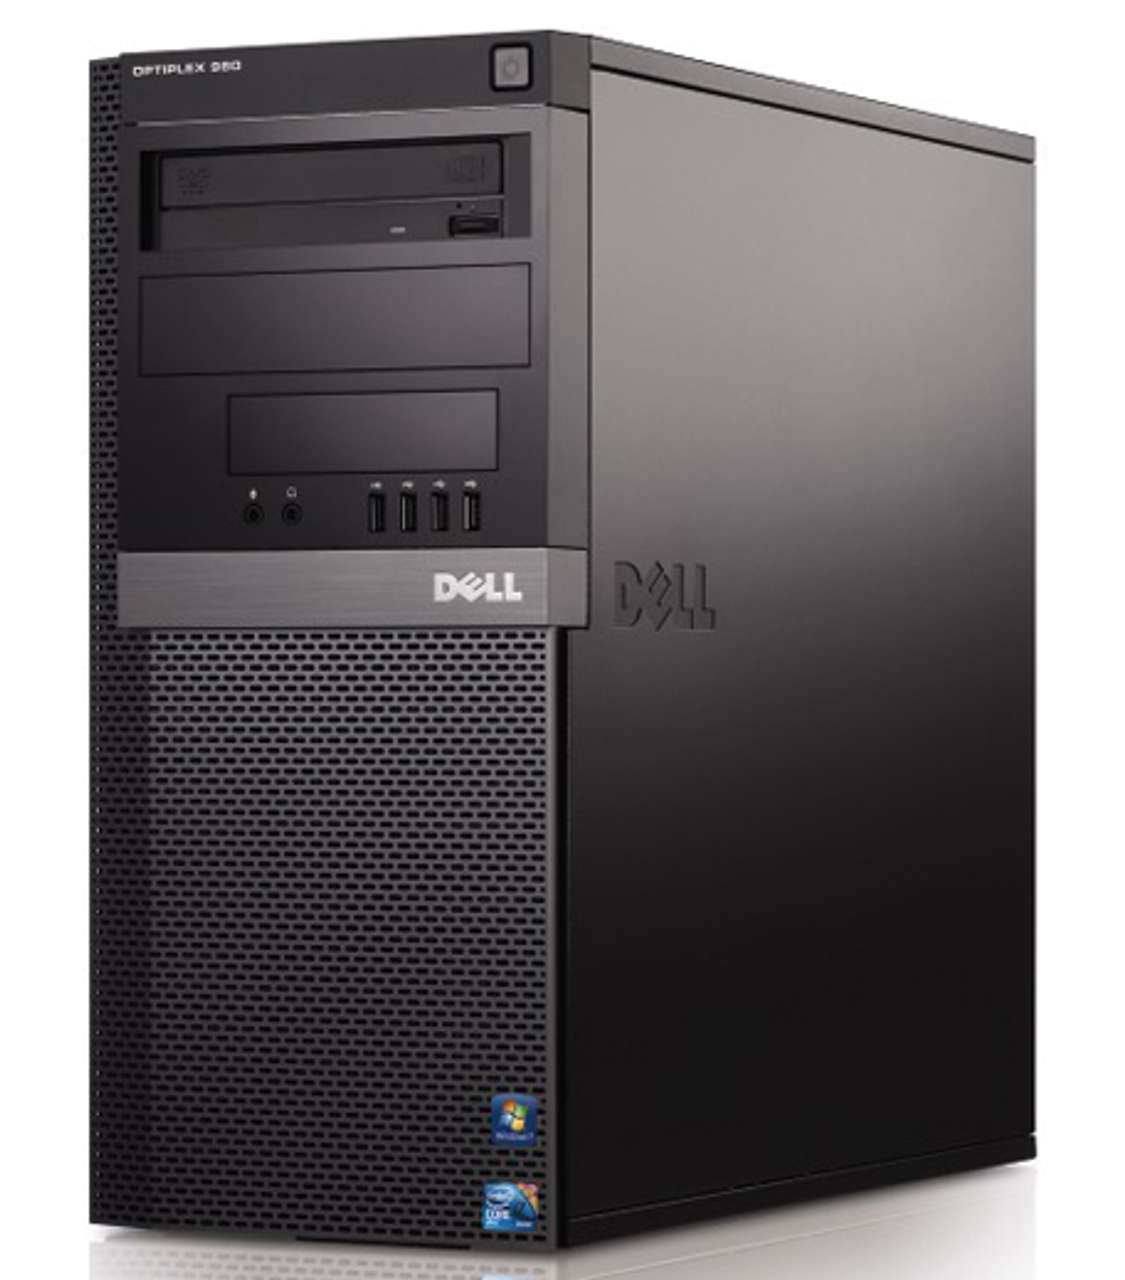 Dell Optiplex 980 Tower Quad Core i7 2.93GHz, 4GB Ram, 160GB HDD, DVD-RW, Windows 7 Pro 64 Desktop Computer